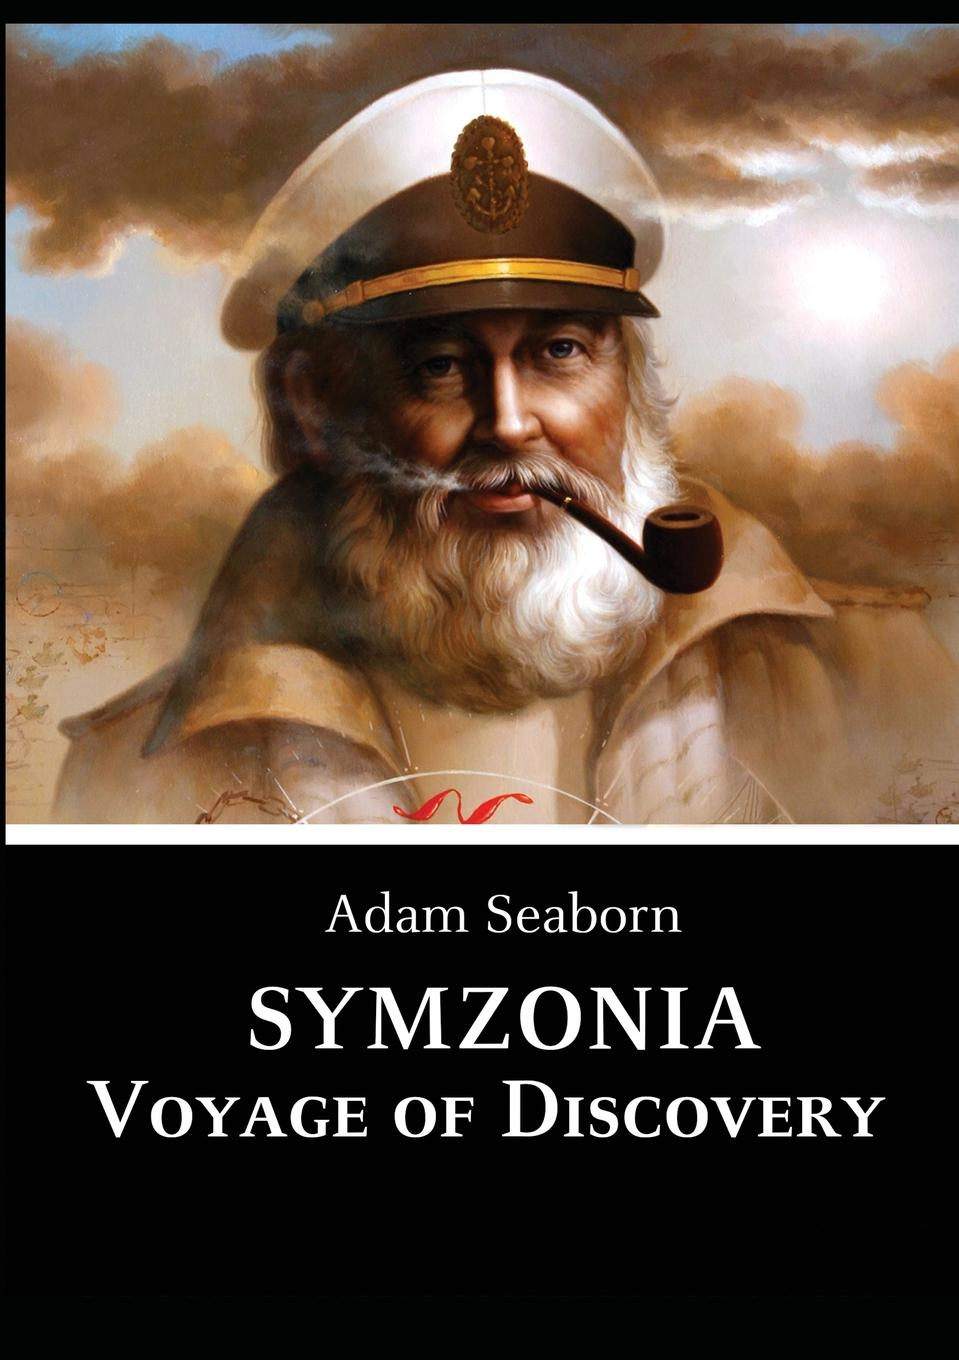 Adam Seaborn Symzonia. Voyage of Discovery ed dodge dan s story one man s discovery of his inner health power